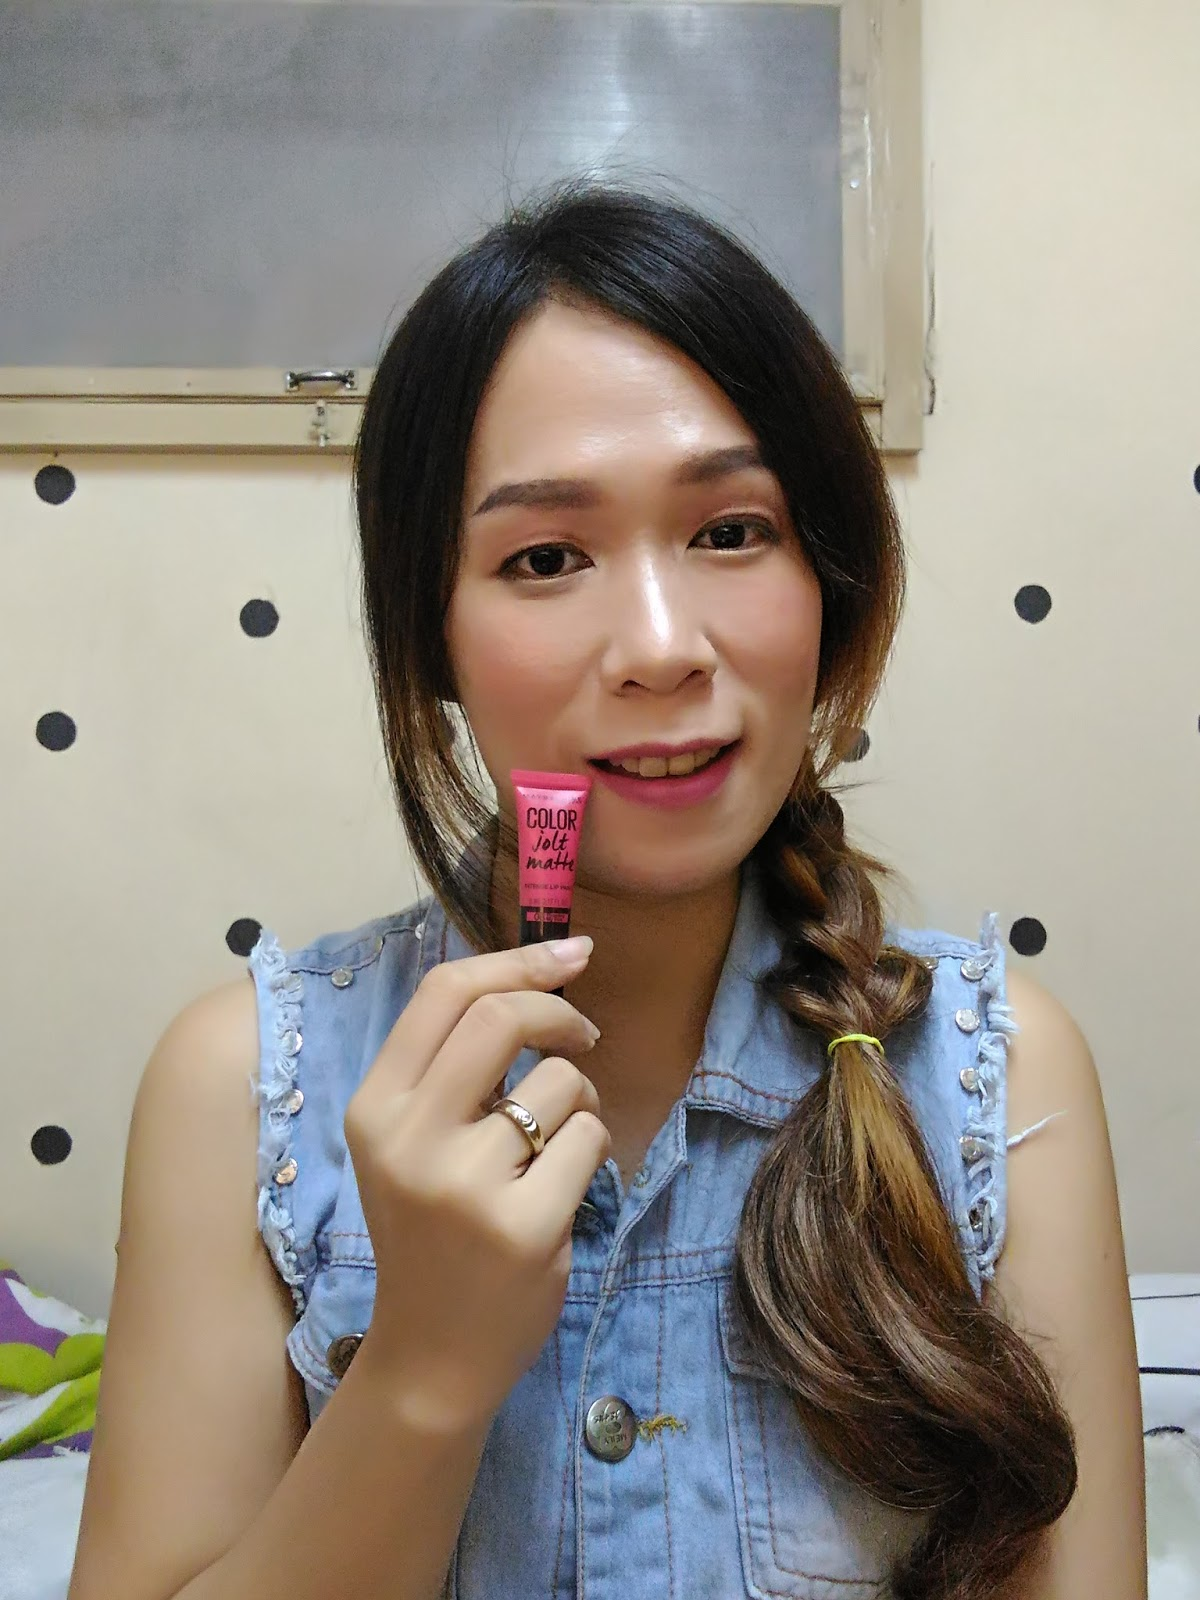 08 - Maybelline Color Jolt Matte Intense Lip Paints - Flaunting My Pink